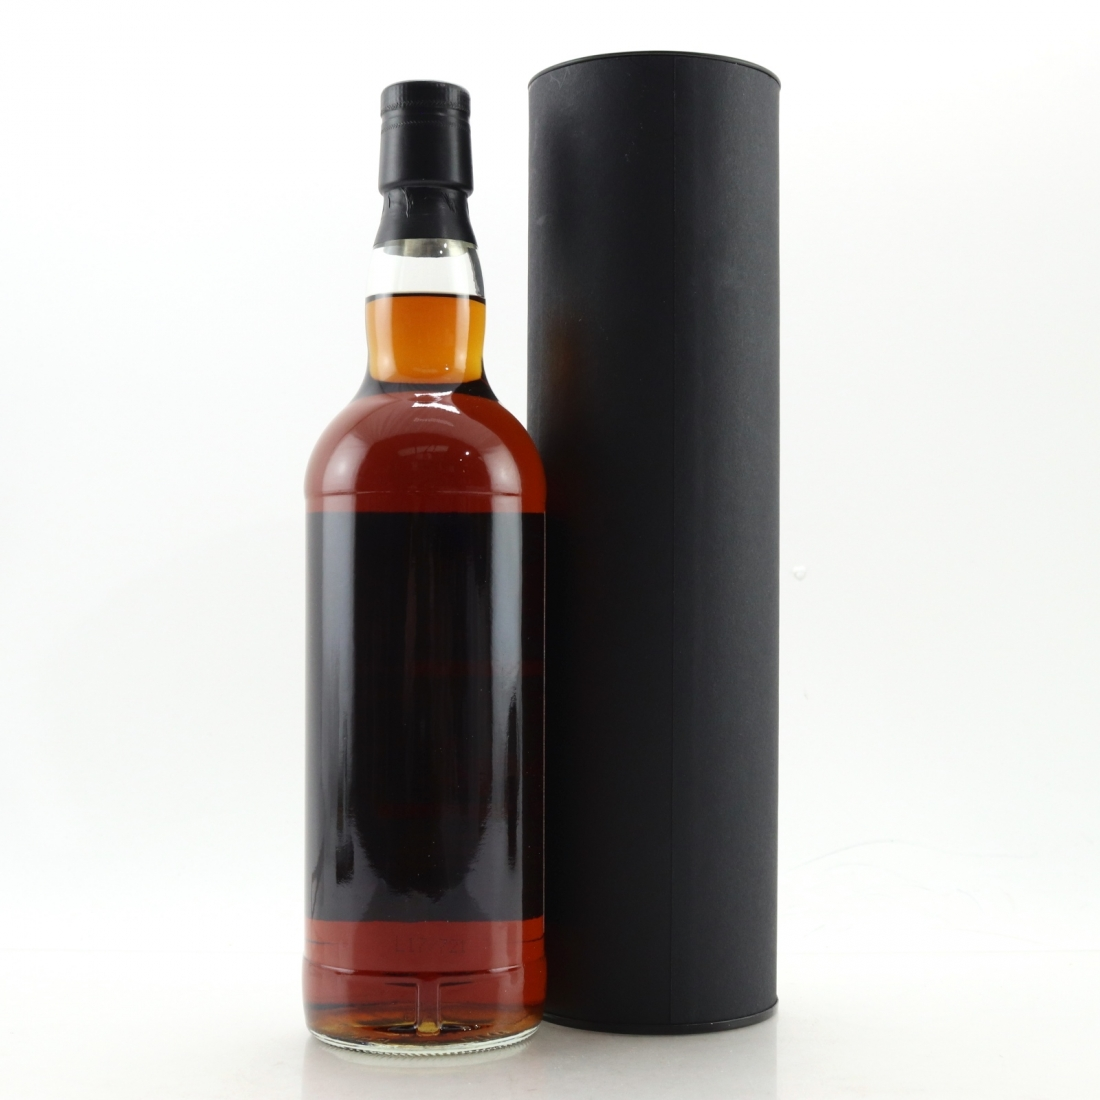 Bunnahabhain 2004 Signatory Vintage 13 Year Old / Local Dealer Selection